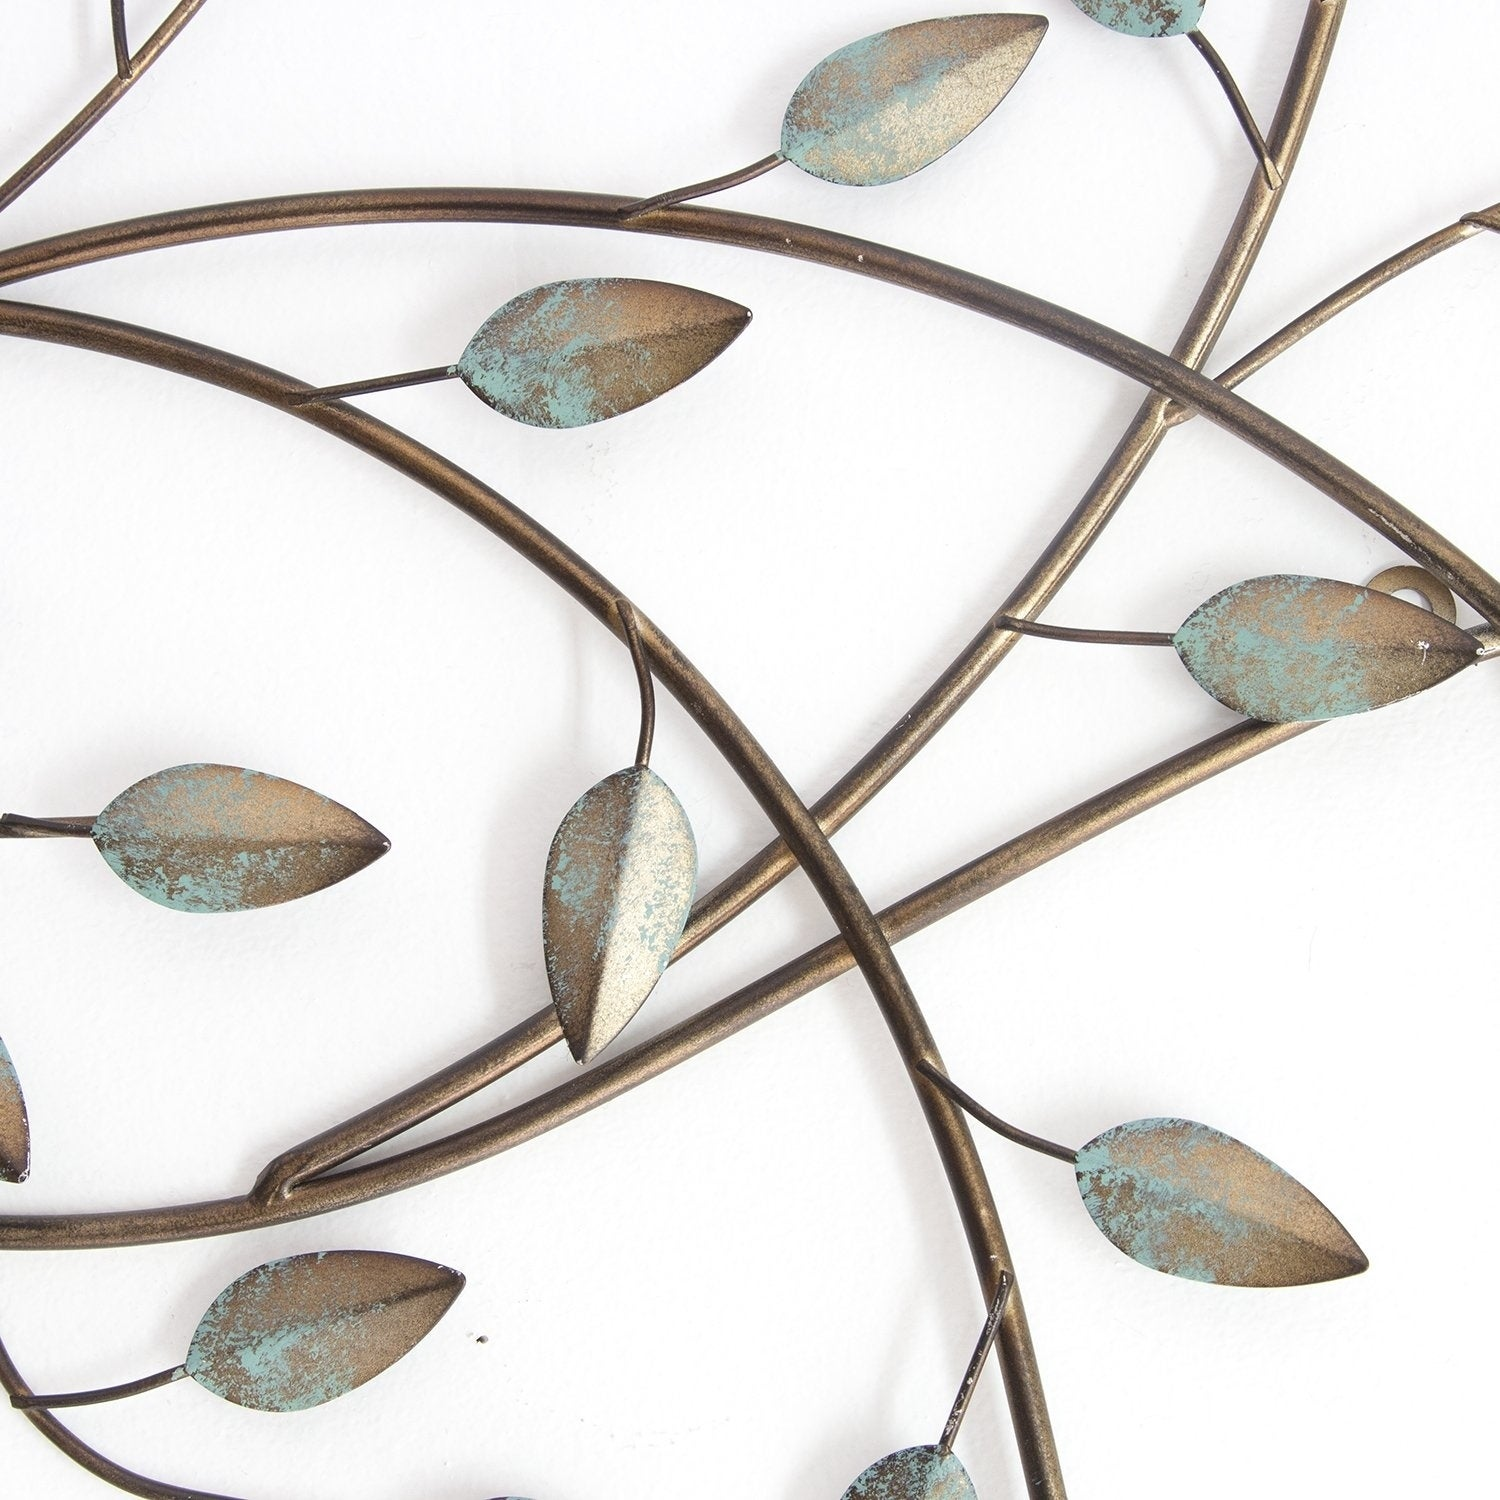 Stratton Home Decor Patina Blowing Leaves Wall Decor - Free Shipping ...